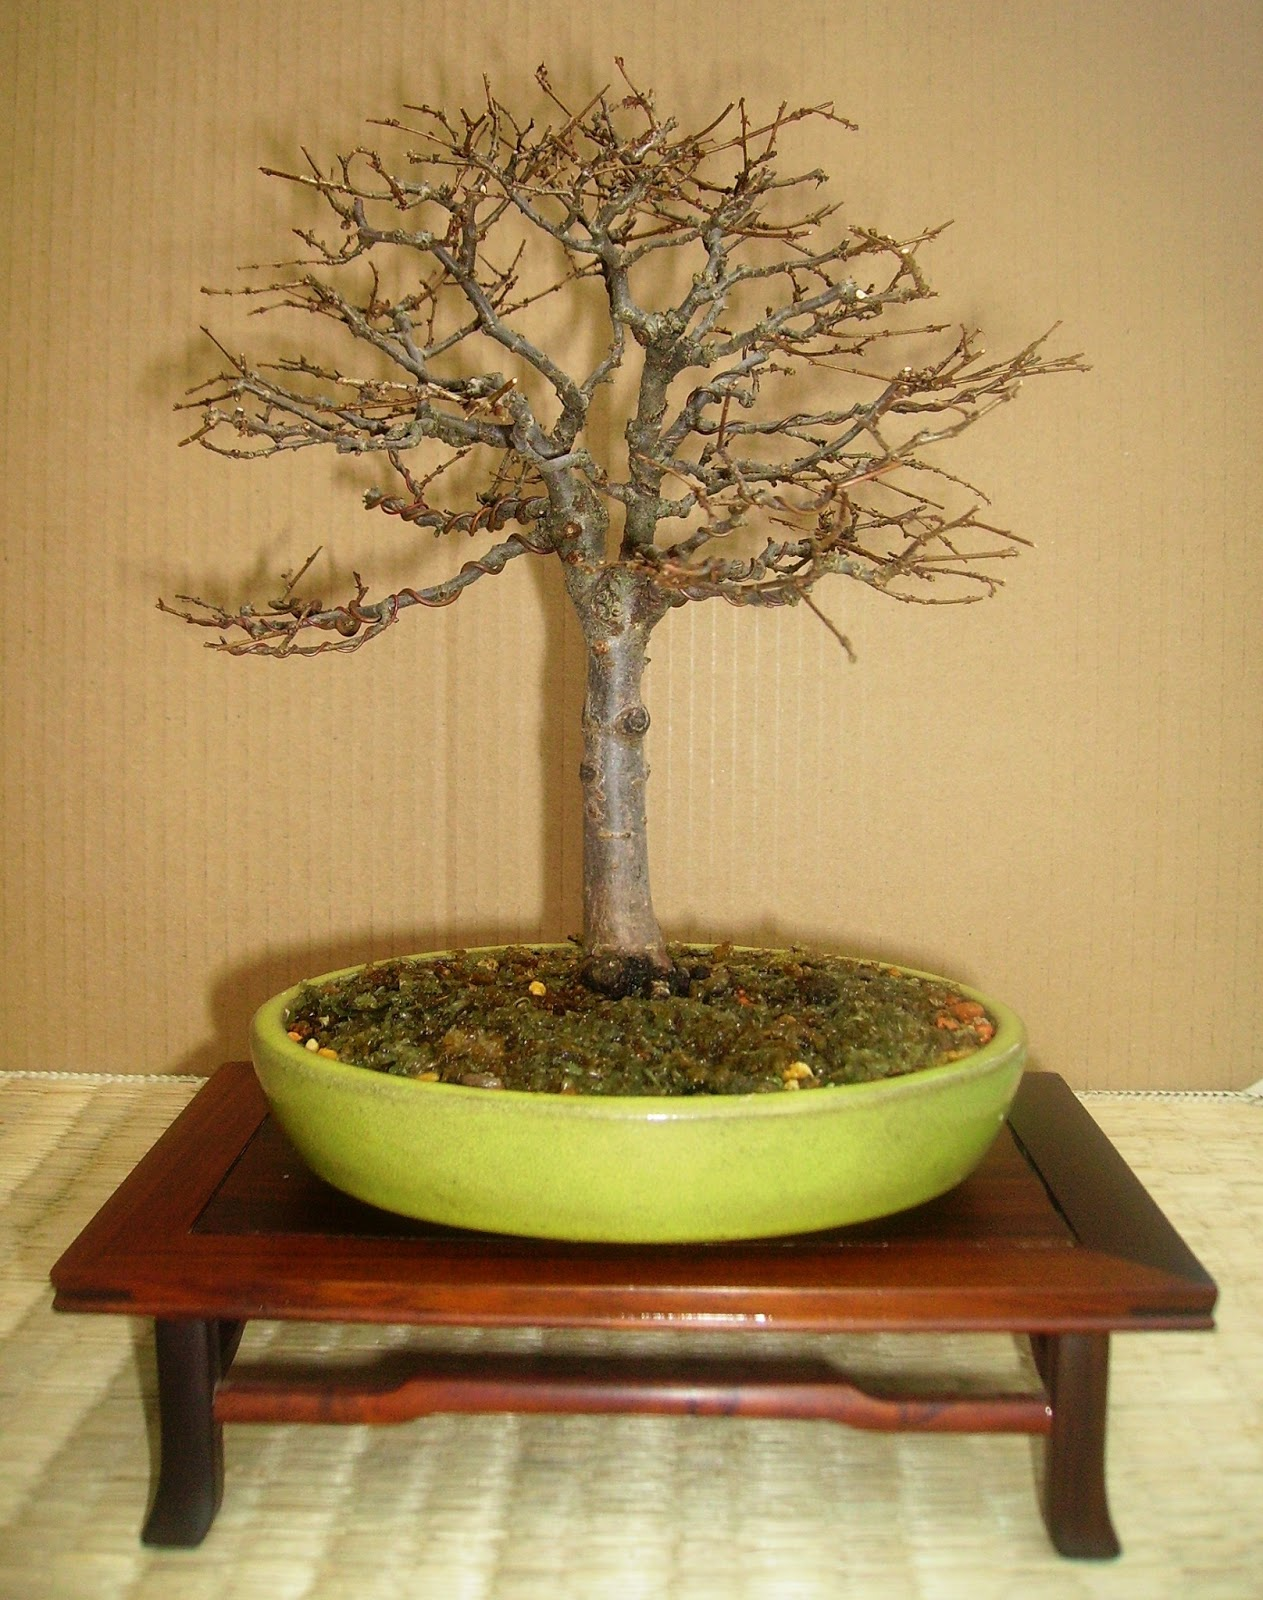 Bespoke Bonsai Stands New Display Stands Added To The QuotItems For